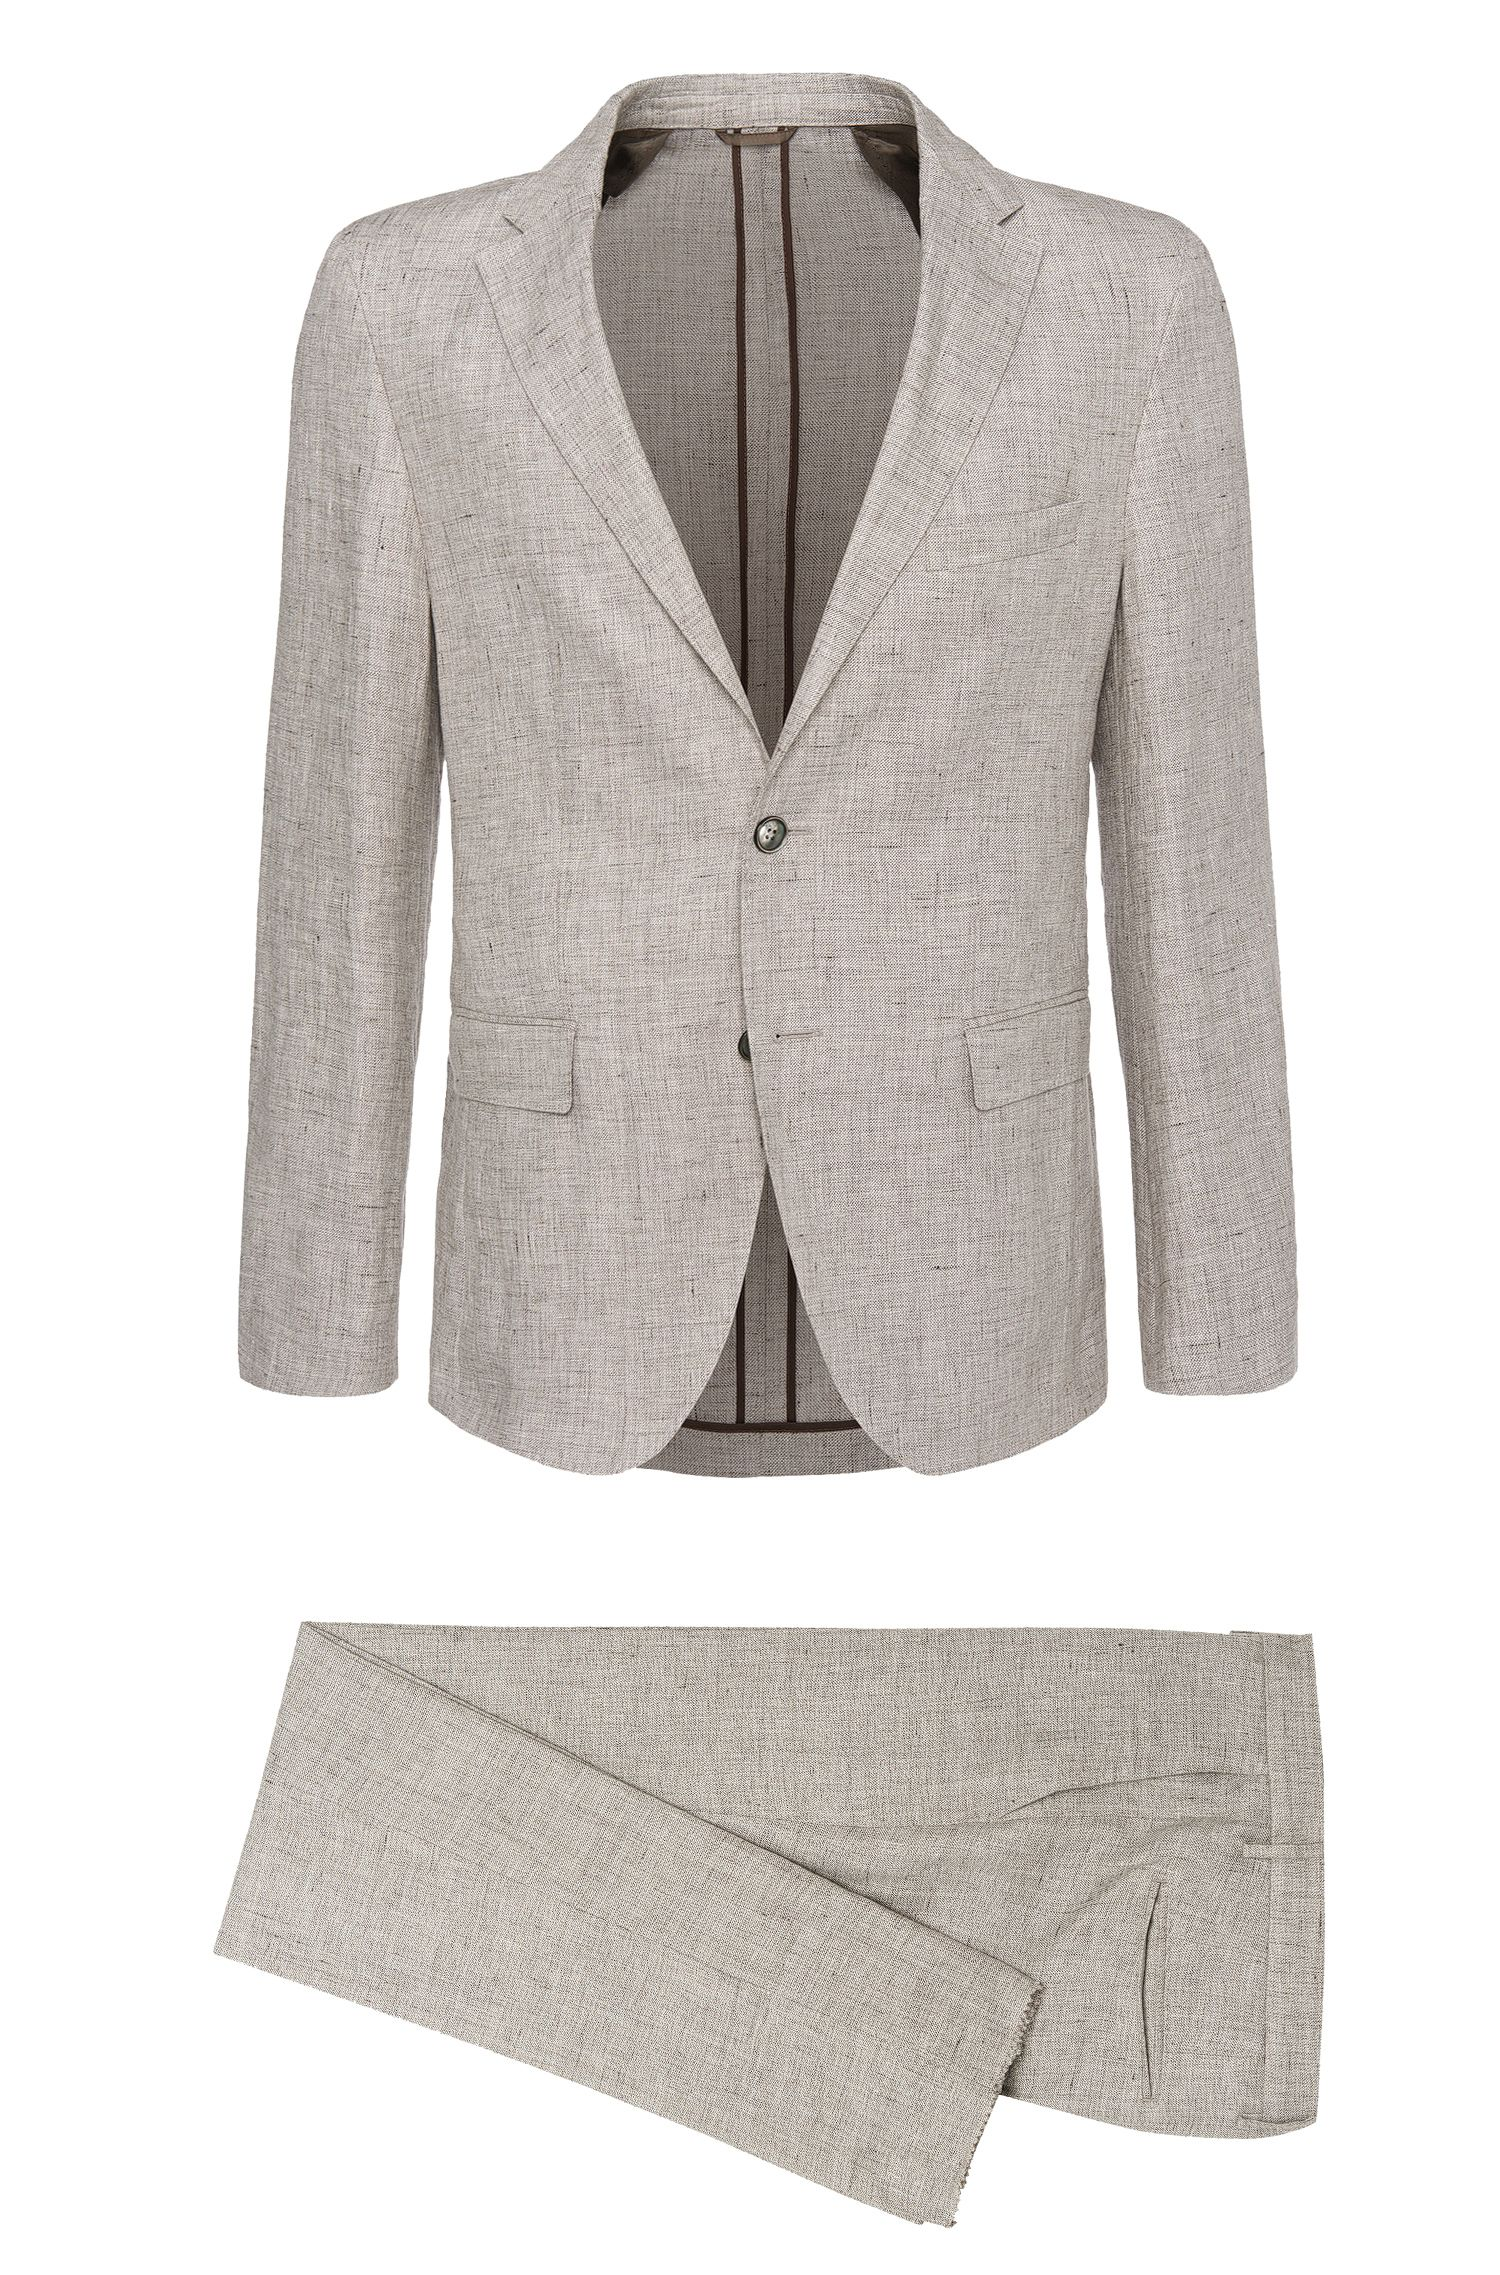 'T-Norten/Bexter' | Slim Fit, Italian Linen Suit